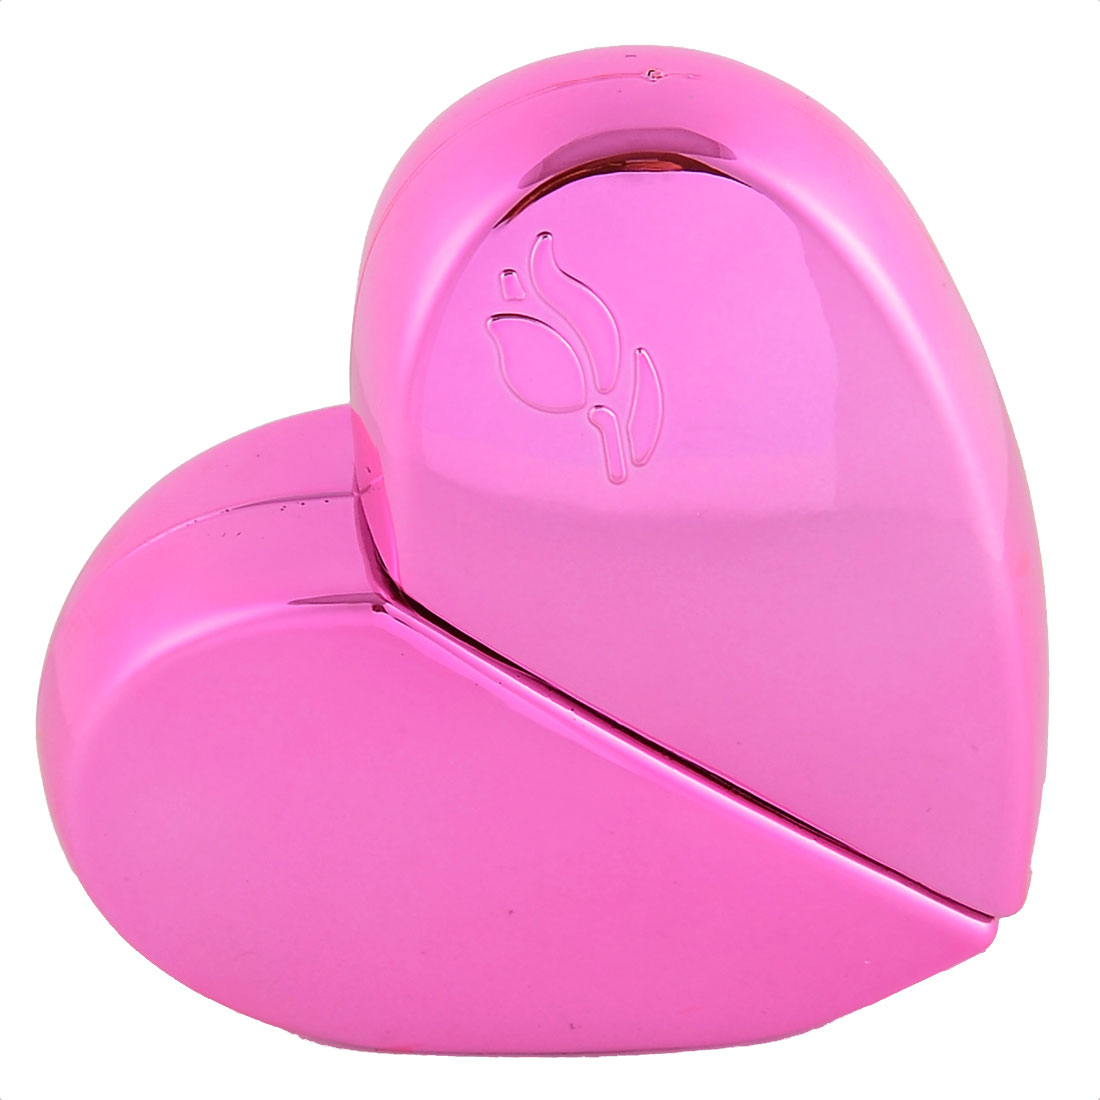 25mL Travel Portable Heart-shaped Cosmetic Water Perfume Spray Bottles Pink